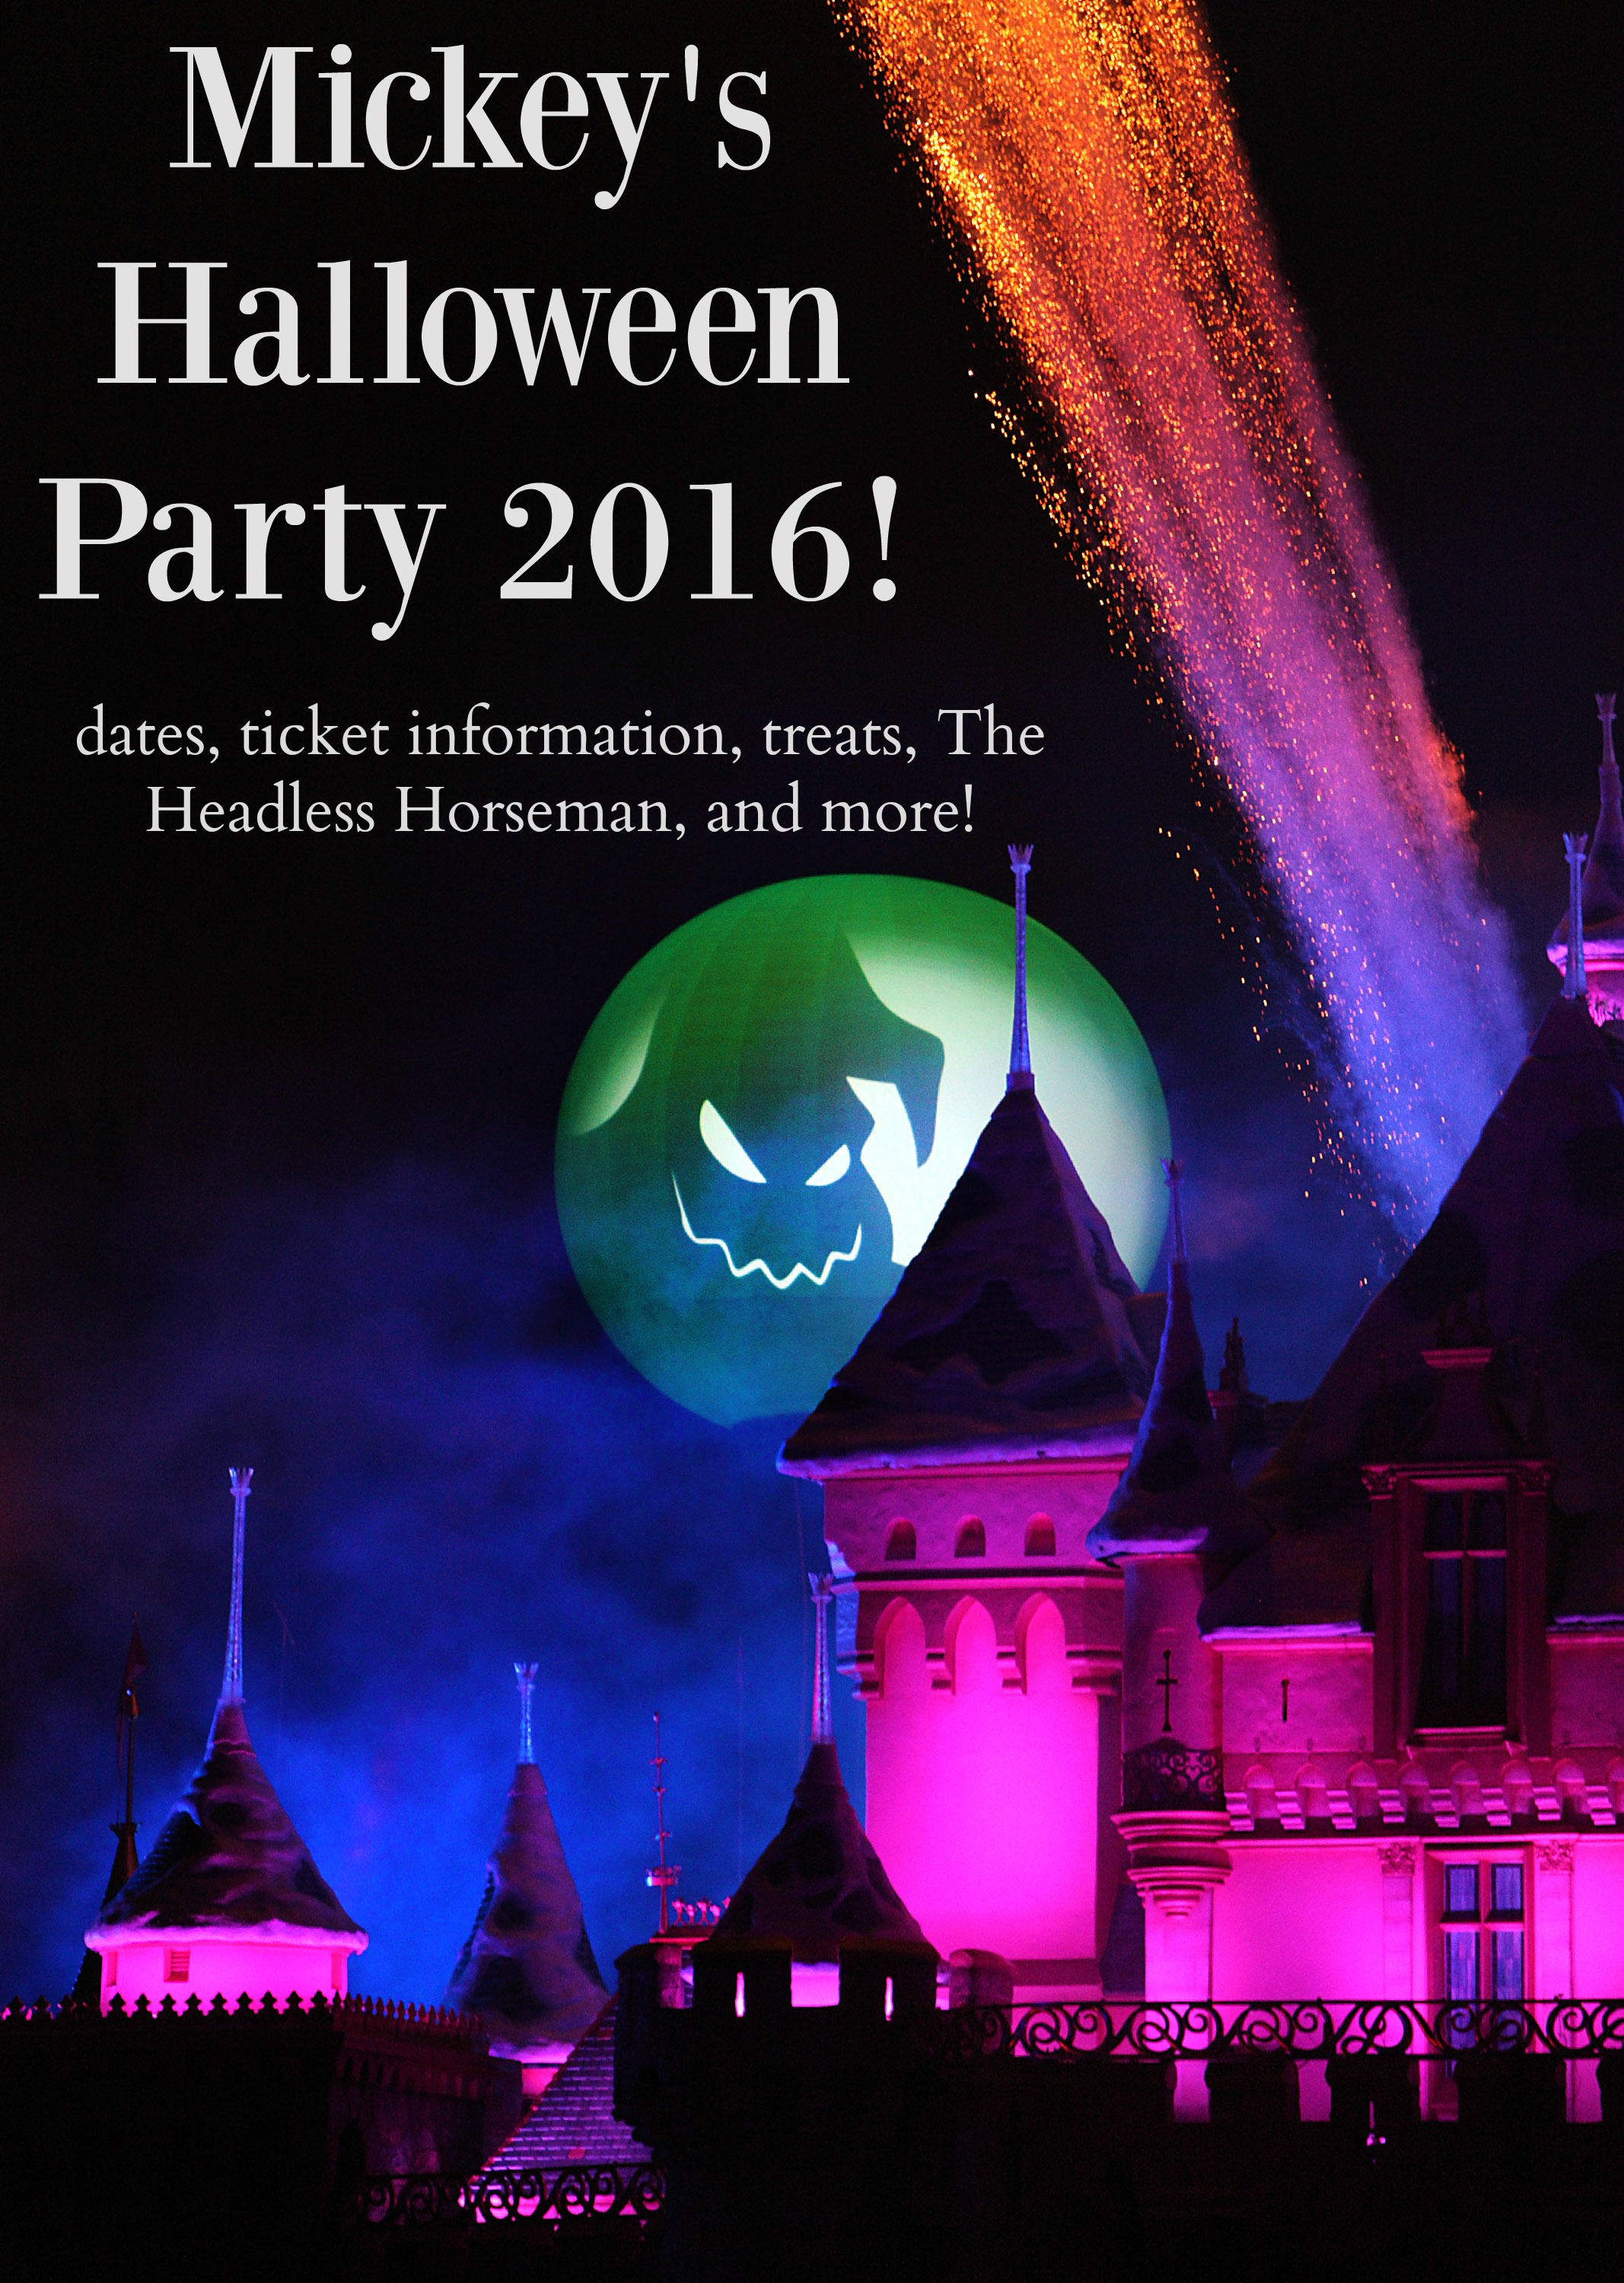 Mickey's Halloween Party dates and ticket information